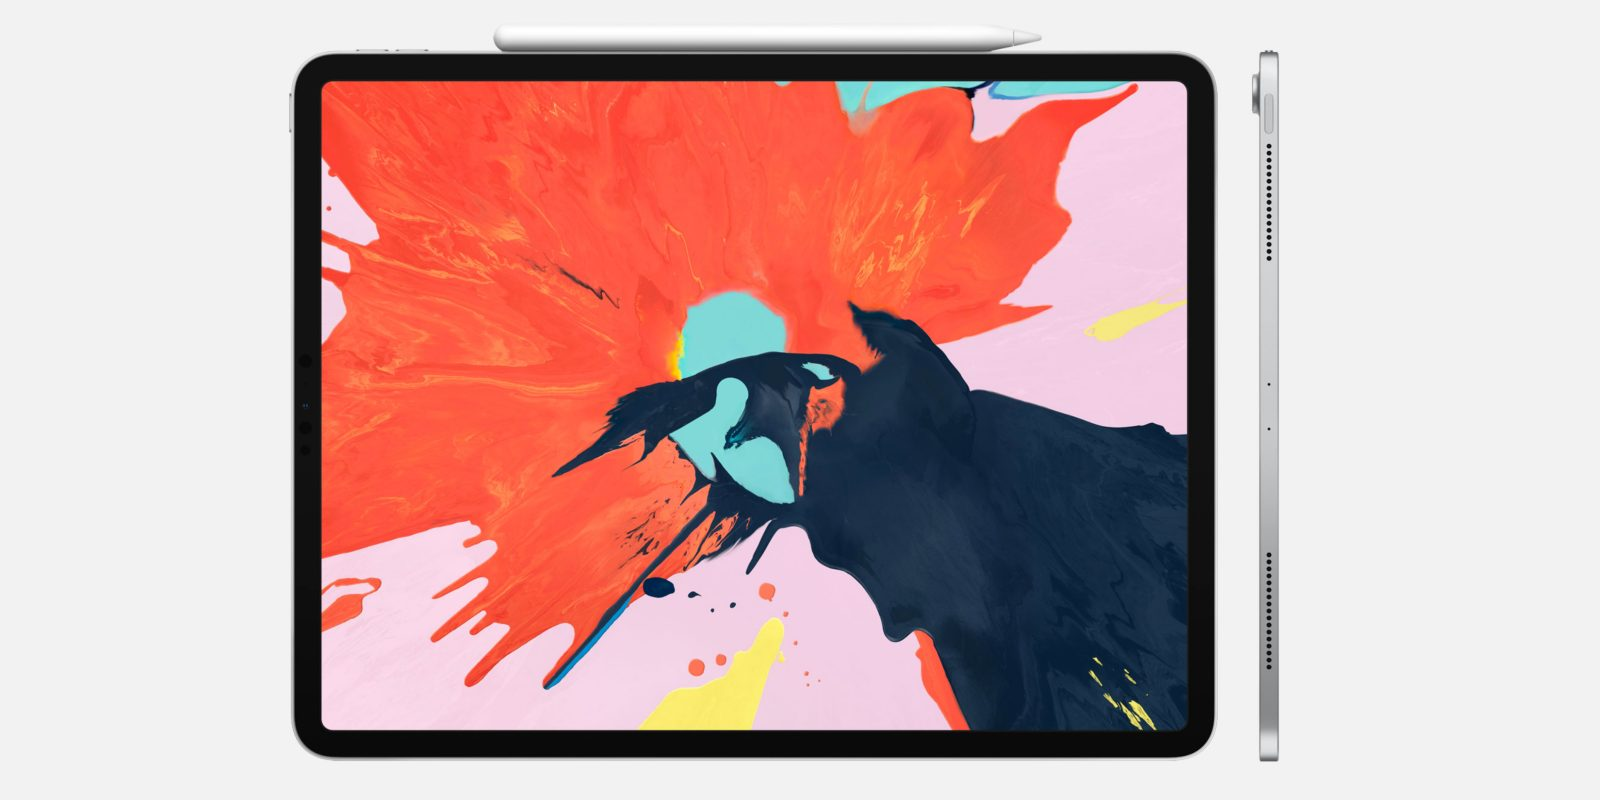 Apple's latest iPad Pro models up to $100 off w/ tax benefits for some shoppers